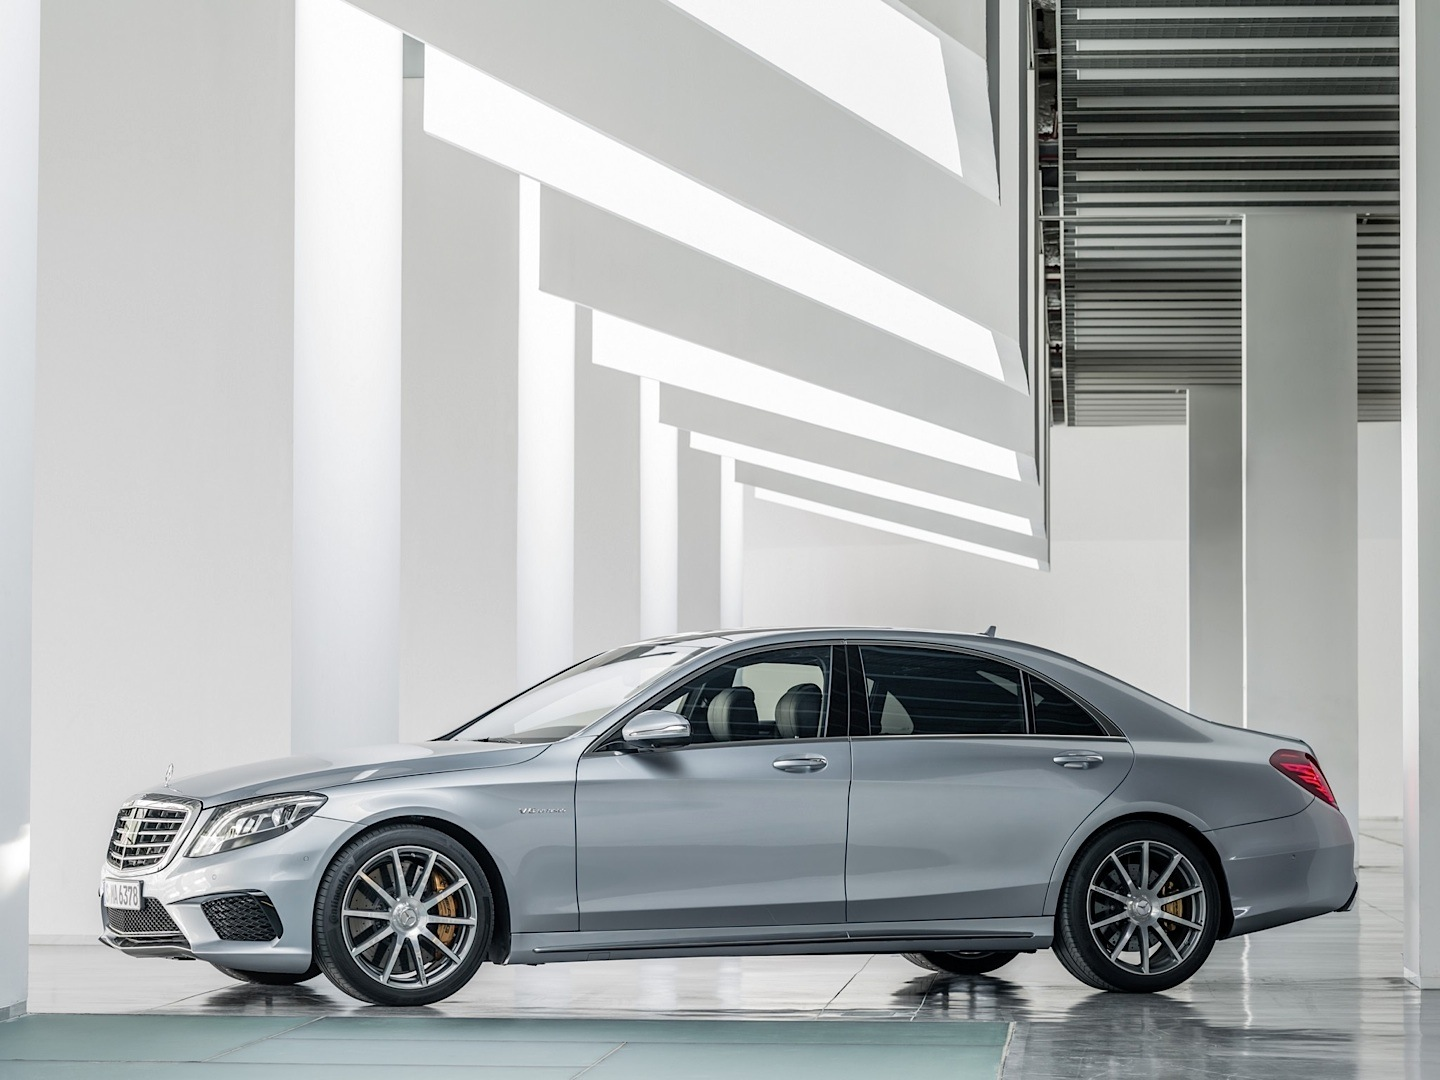 The mercedes benz s63 amg gets its pricing sorted out for for Mercedes benz amg s63 price